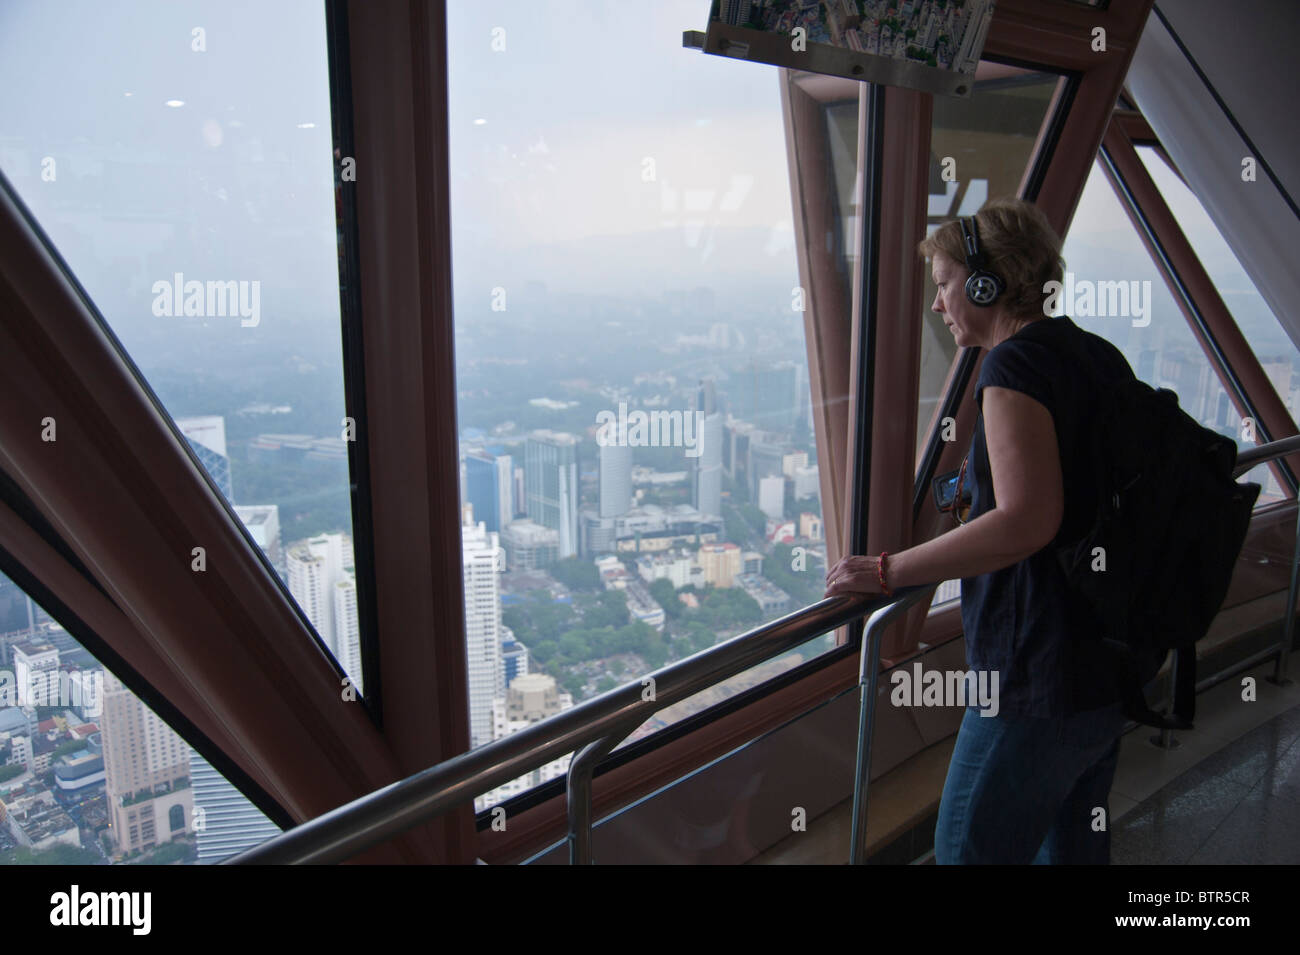 Tourist looking out of the window from the top of KL Tower Kuala Lumpur Malaysia. Wearing headphones listening to - Stock Image